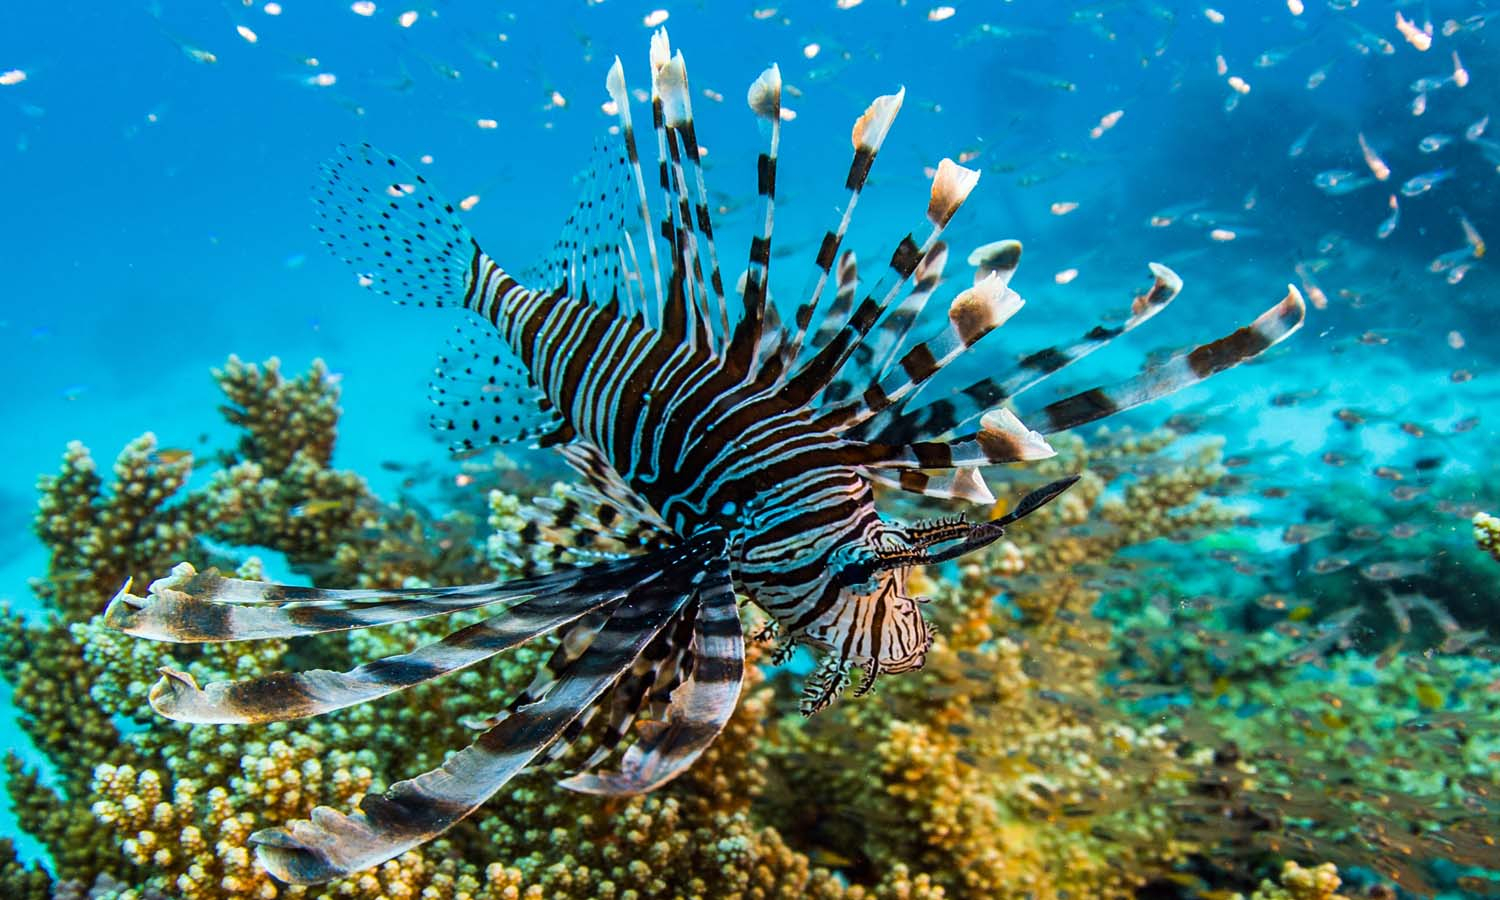 The Lionfish may look spectacular, but its venomous spines can inflict a painful sting on an unwary diver. (Photo Courtesy Courtesy of Nick Robinson and Luke Peterson / © Eye Spy Productions Trading as Northern Pictures)